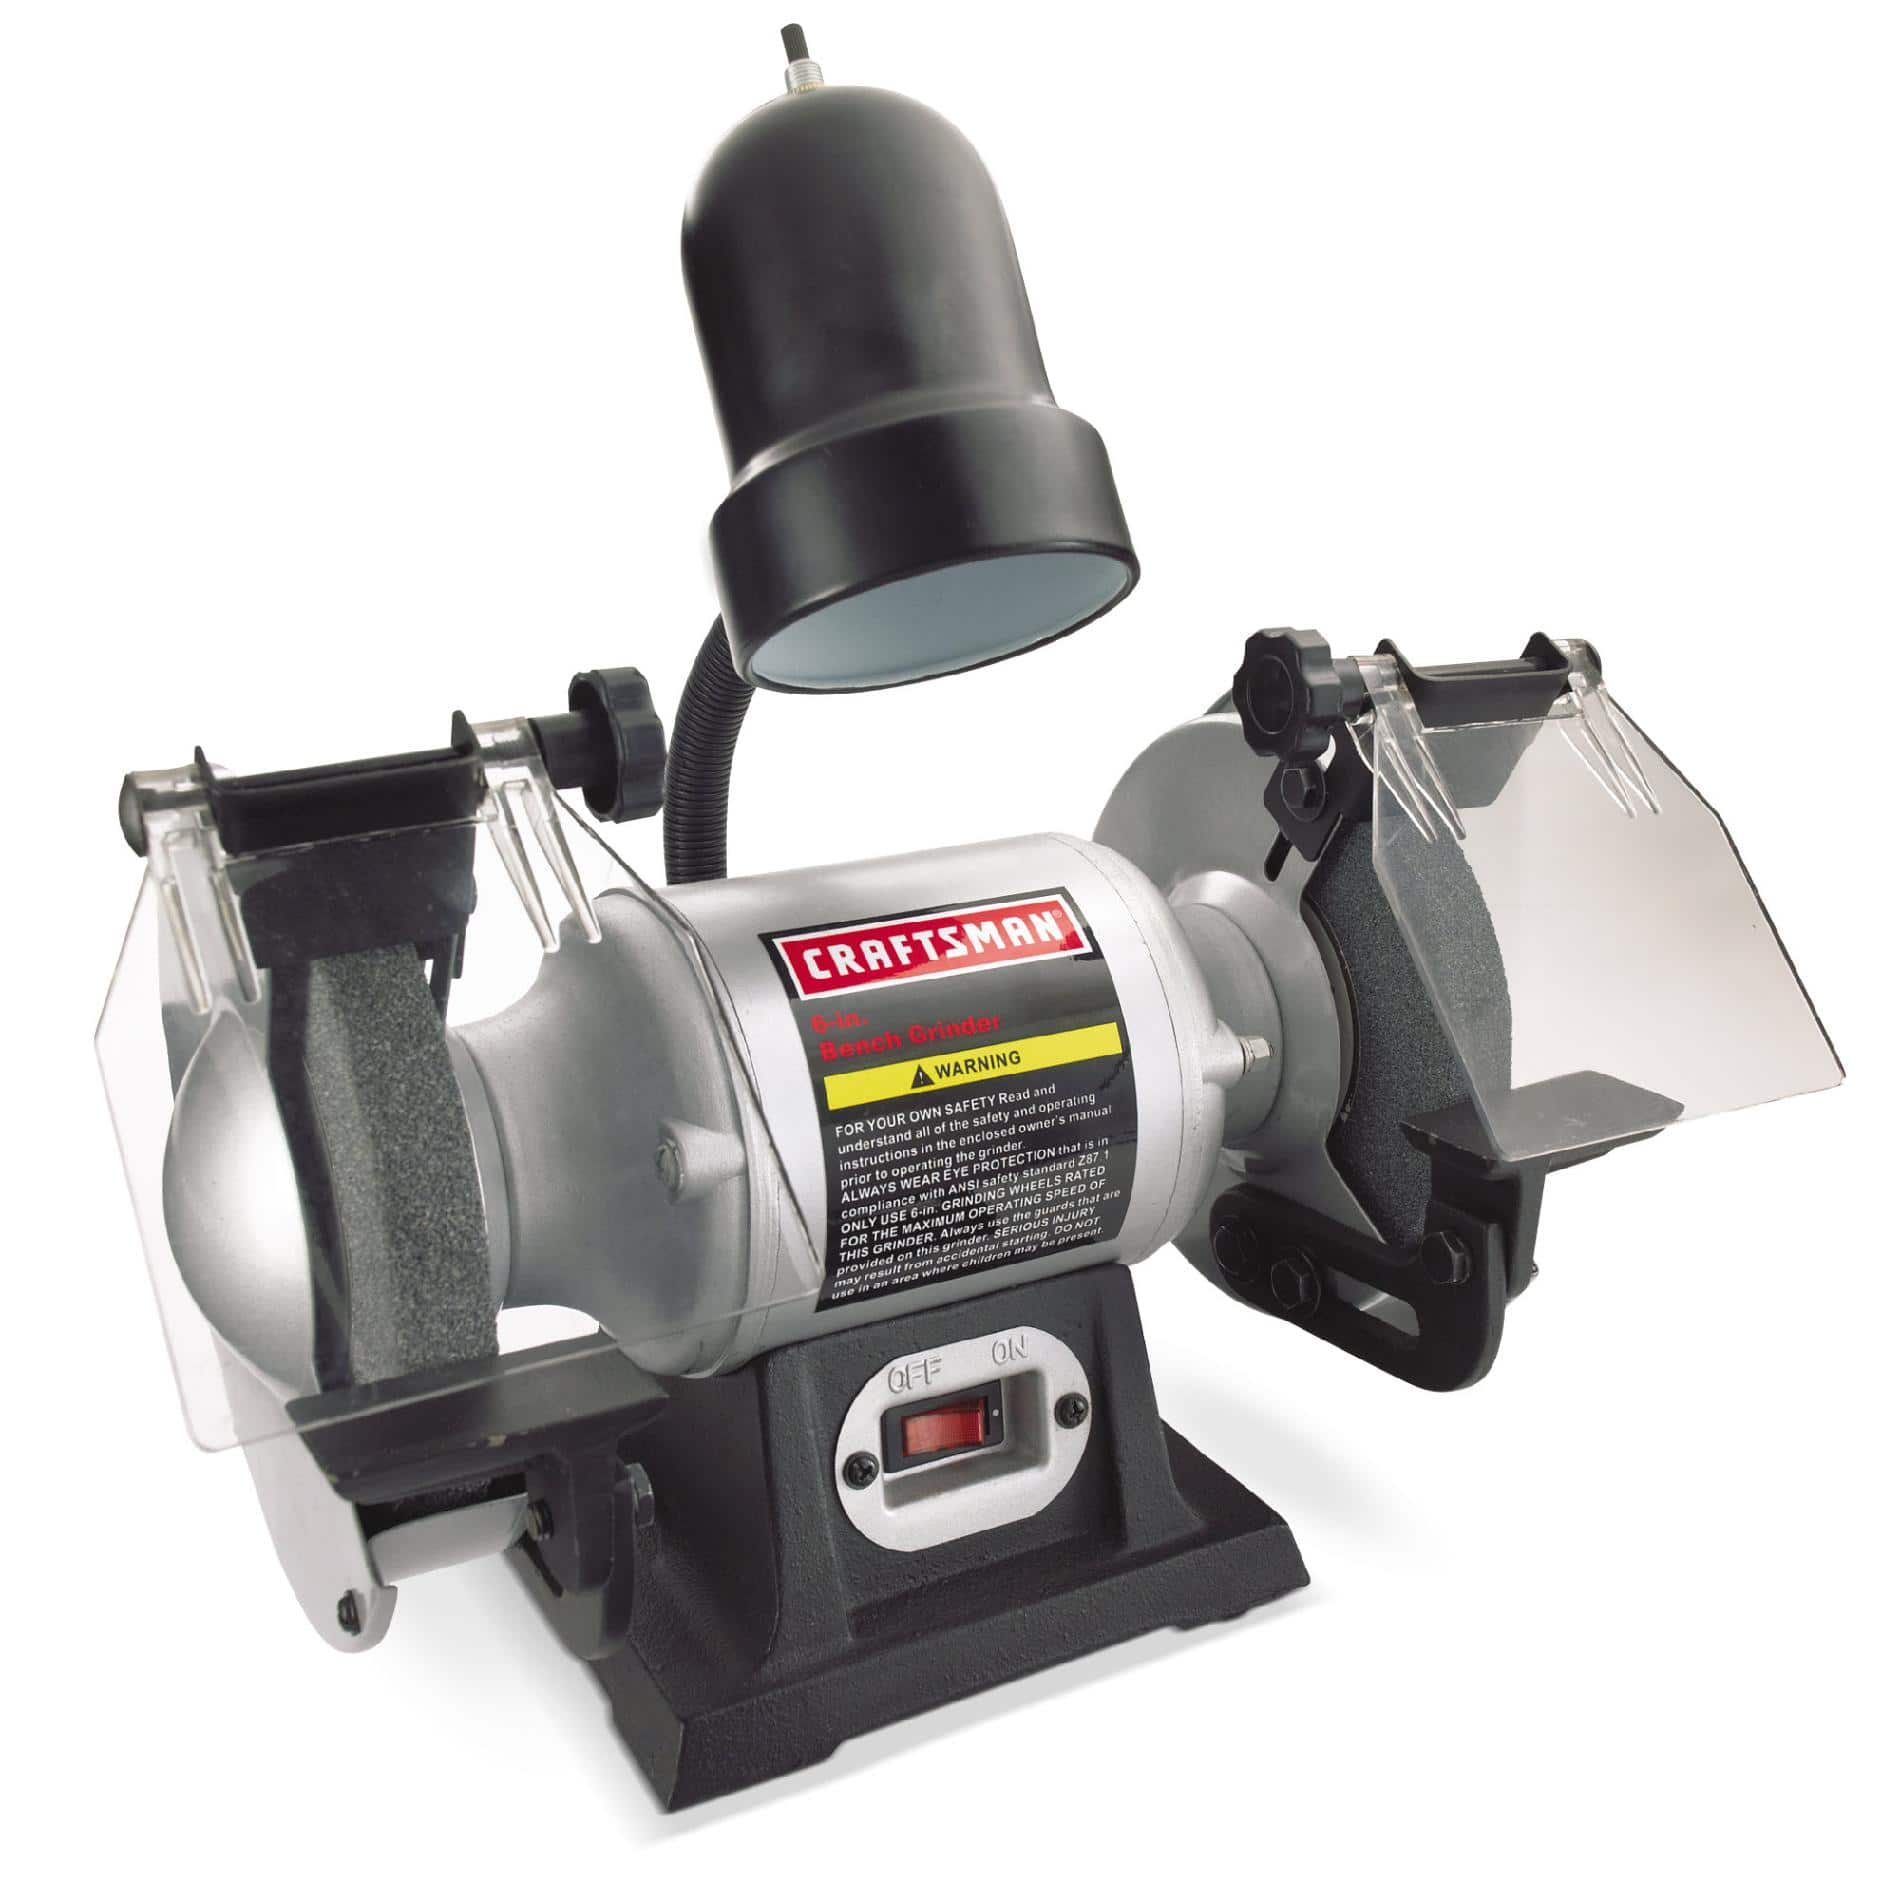 "Craftsman 1/6 hp 6"" bench grinder w/ lamp $39.94 or less free pickup Sears"